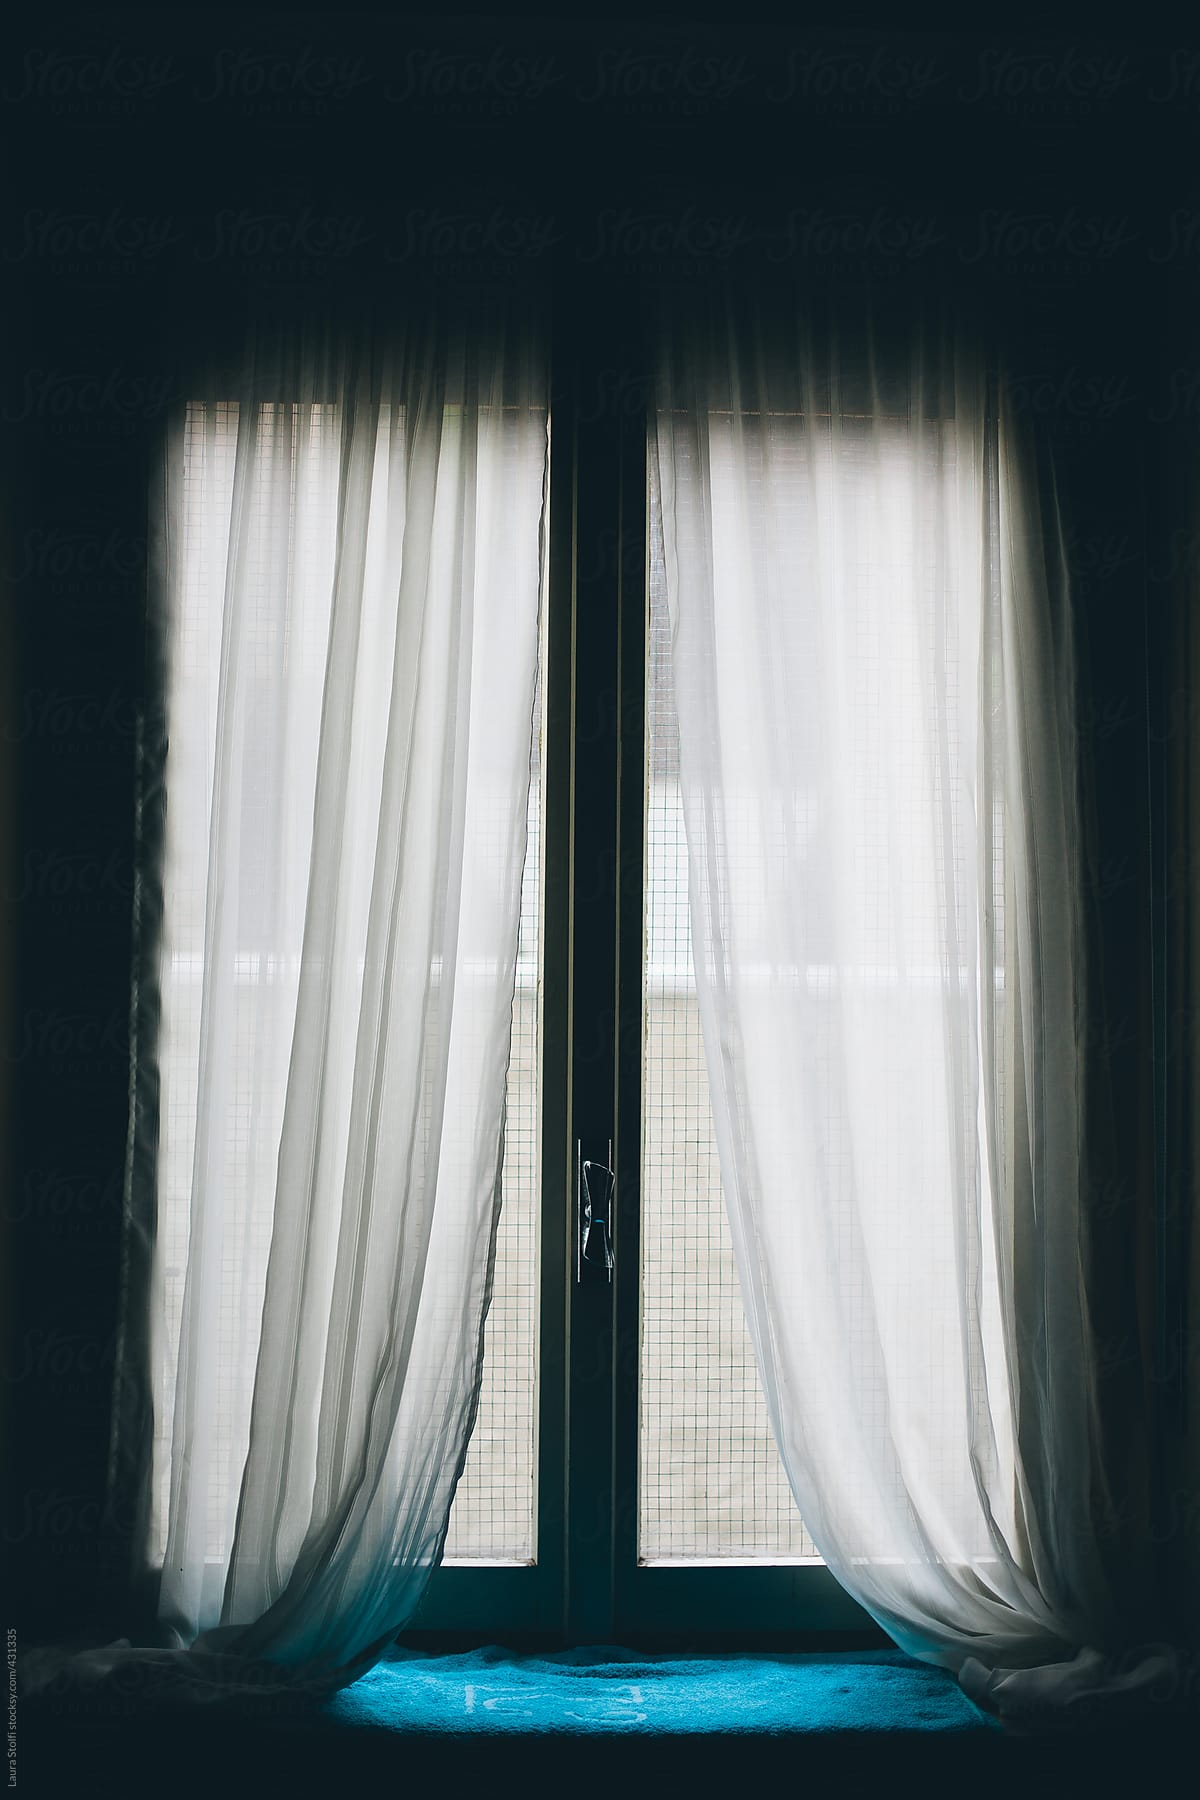 Light Coming Inside Dark Room From Window With Curtains By Laura Stolfi Dark Window Stocksy United